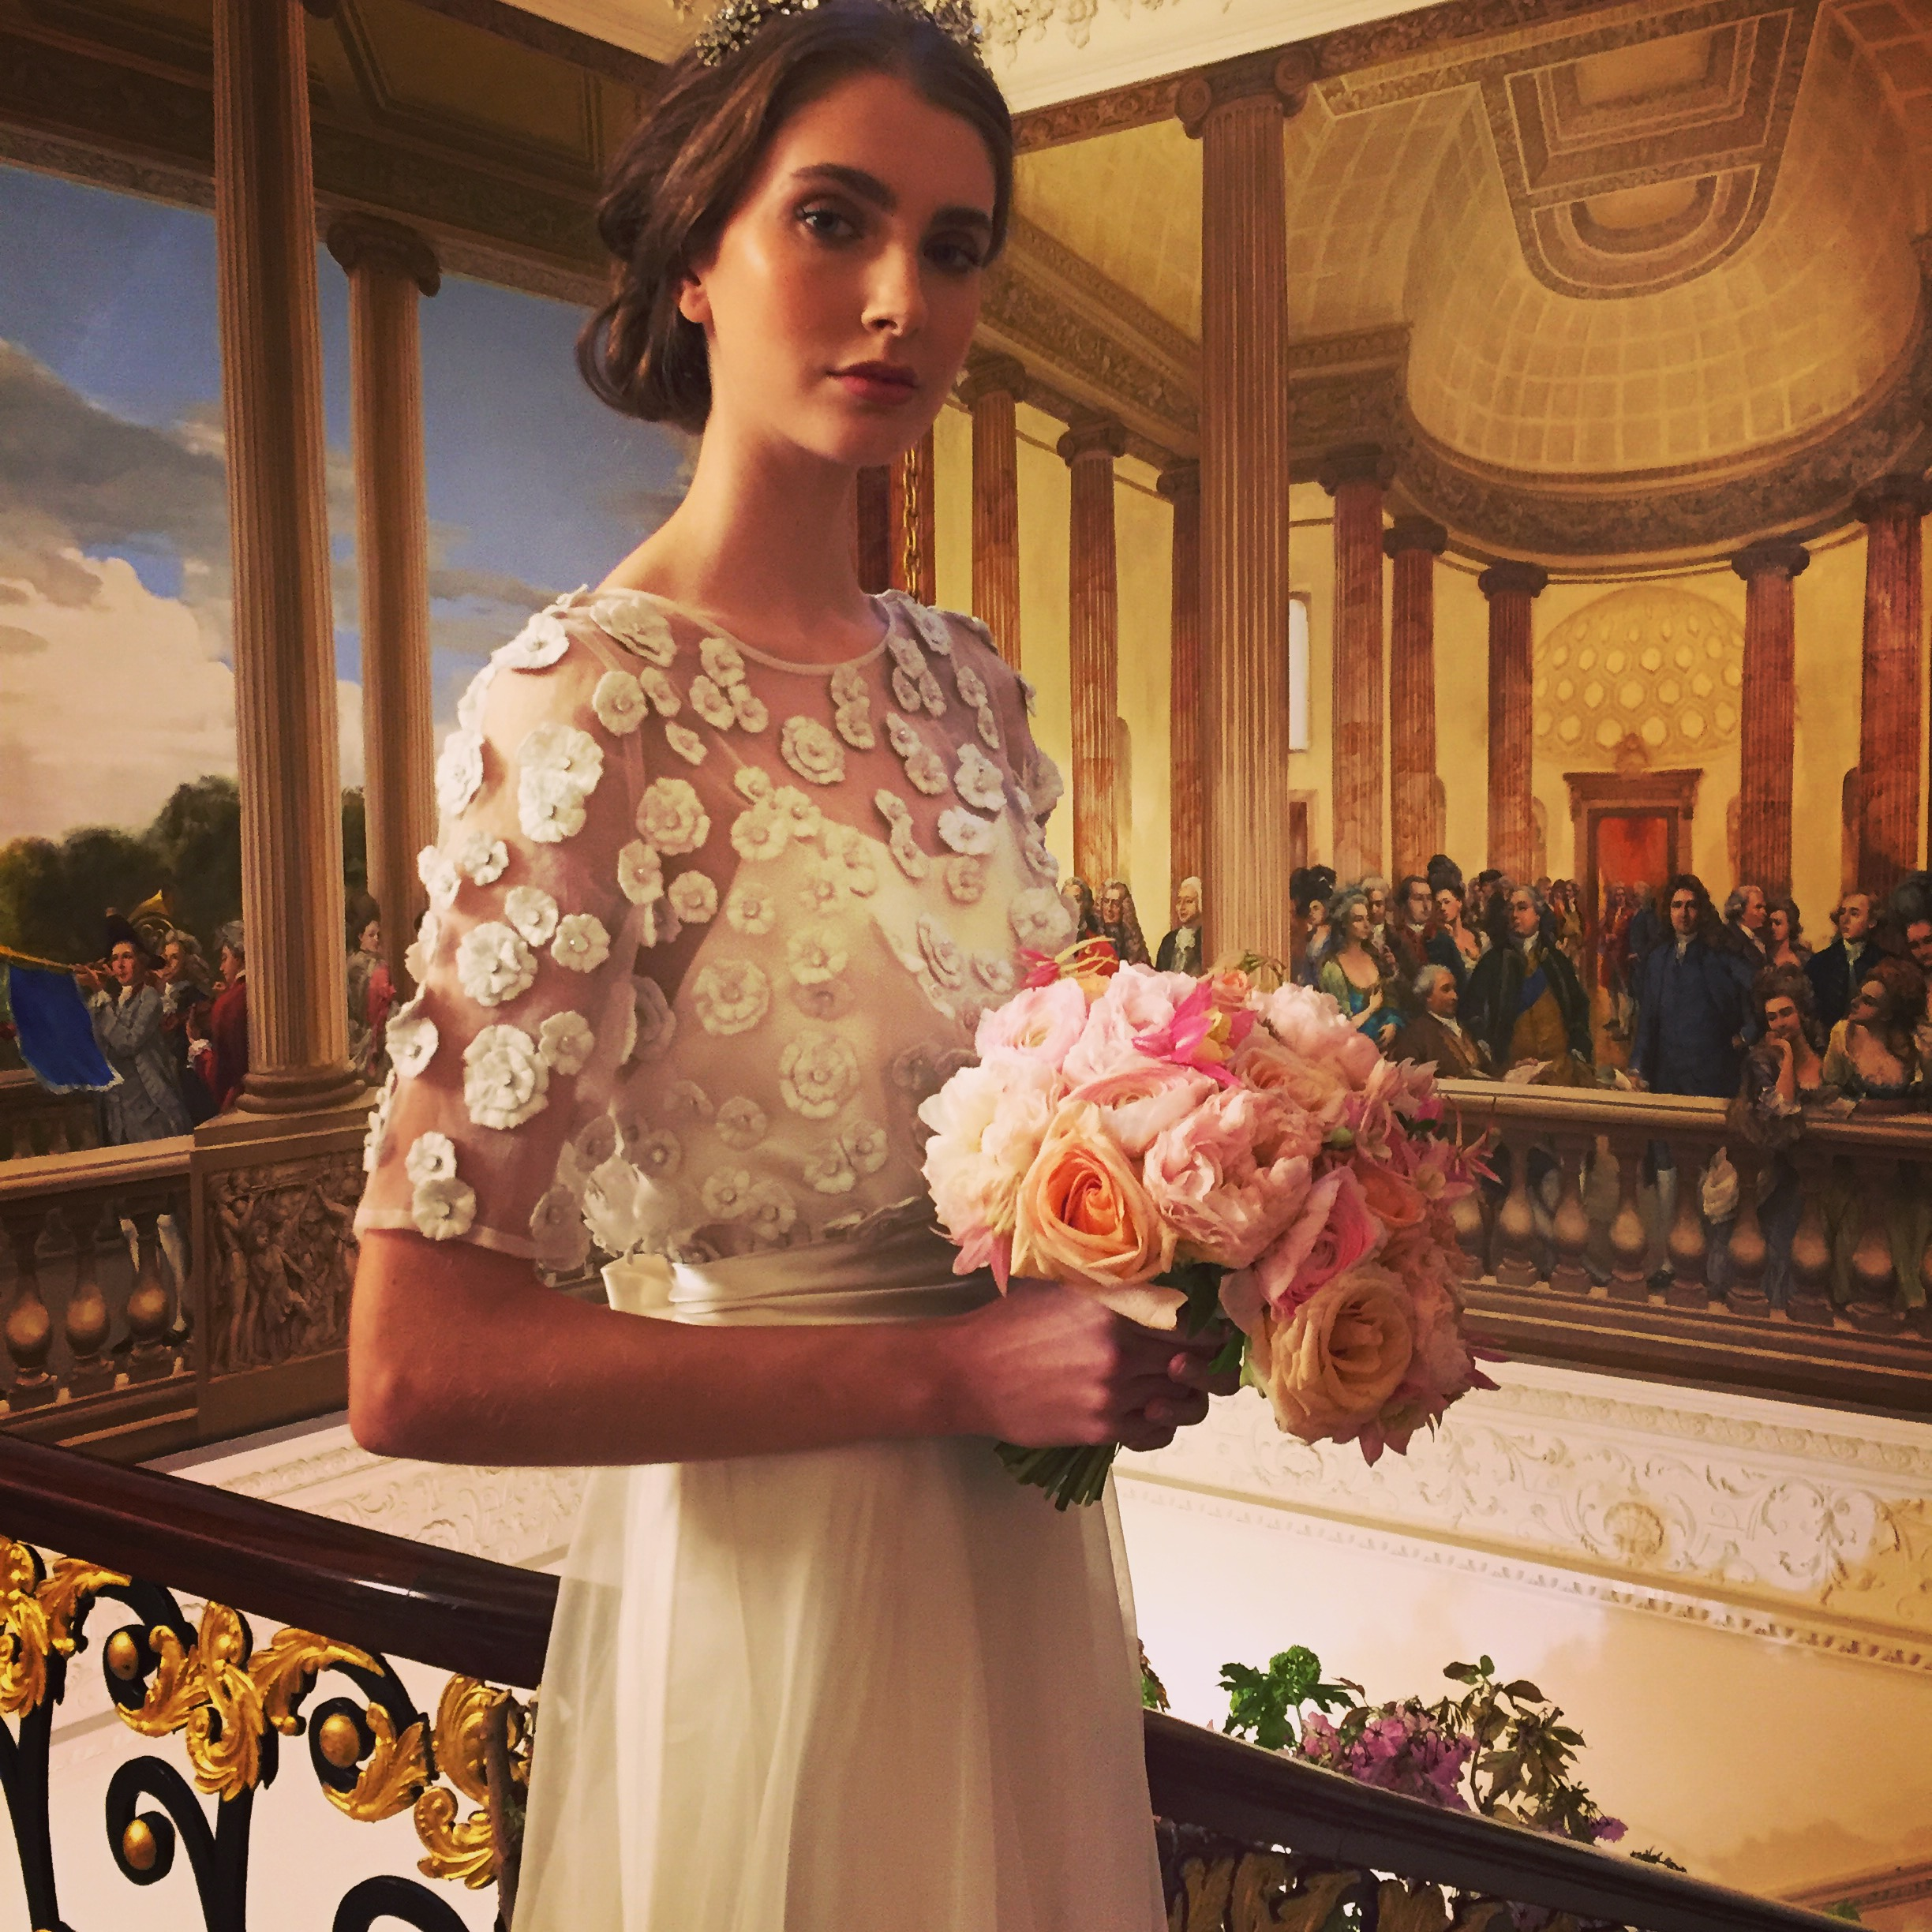 Show Production and Casting for Kate Halfpenny - a most glamorous salon style show at the Ritz